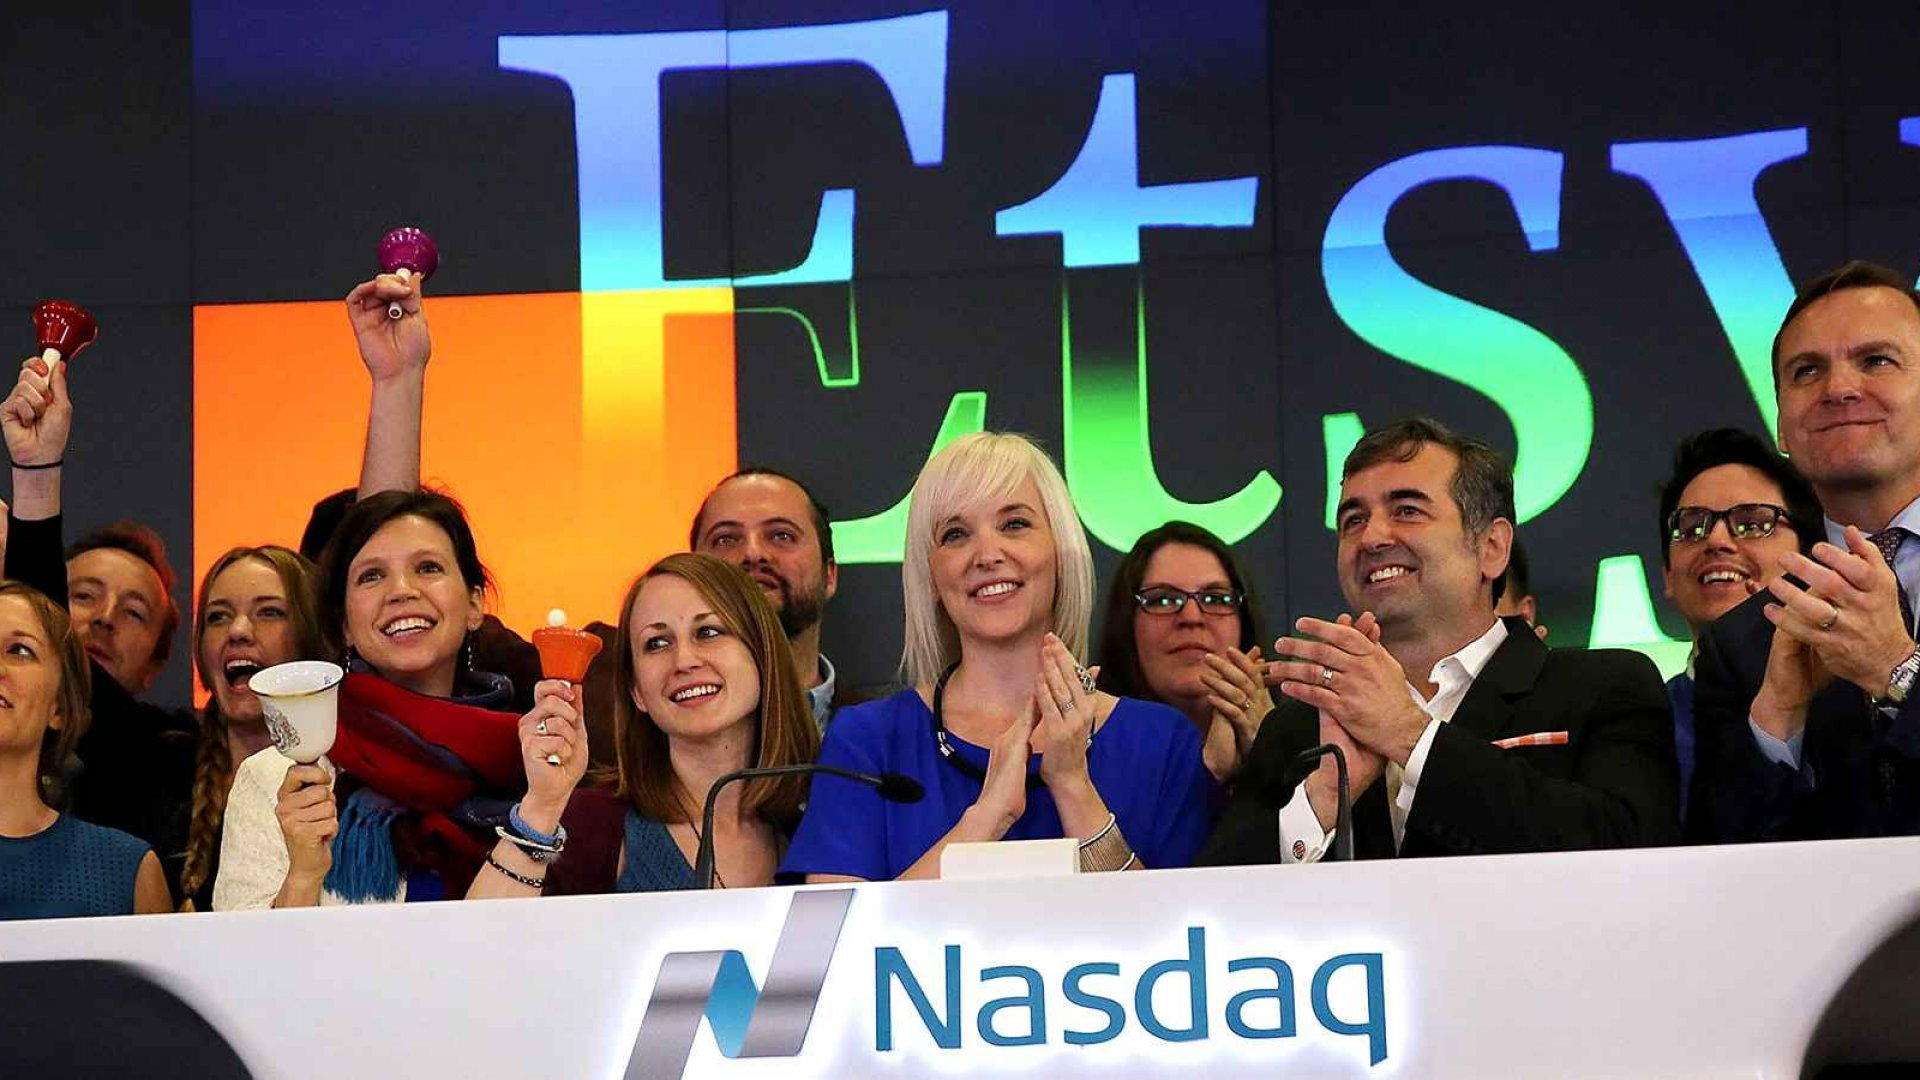 Etsy CEO Chad Dickerson, third from right.